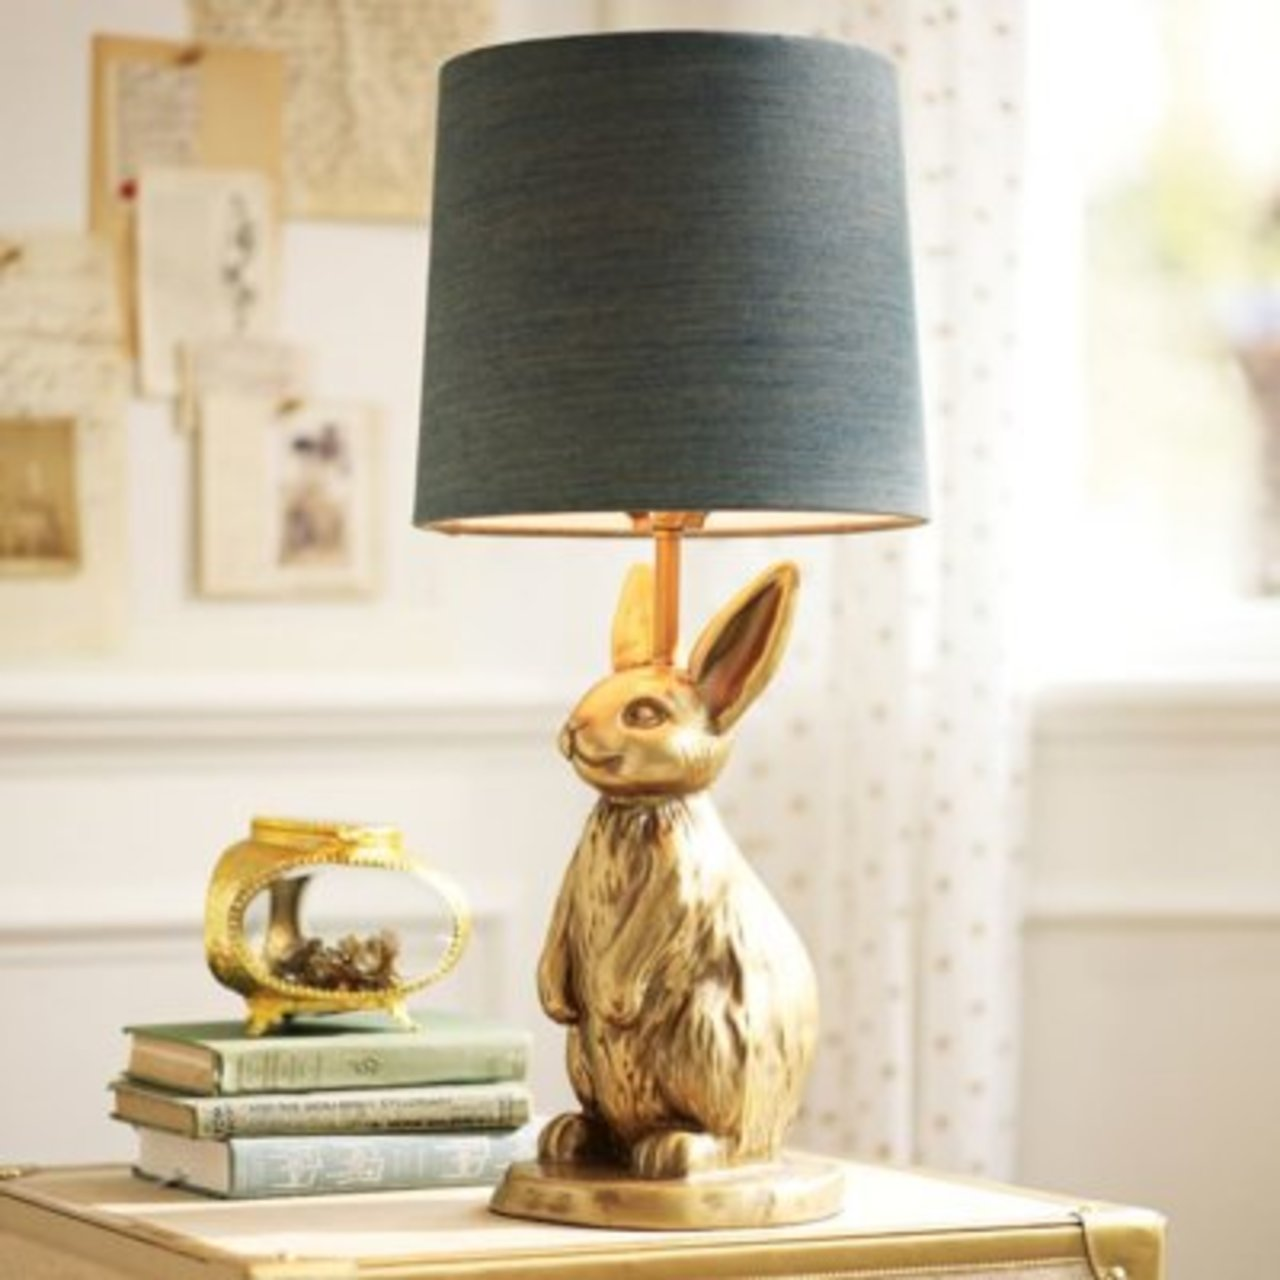 Bring On the Peter Rabbit Nostalgia with Some Adorable Bunny Decor ...